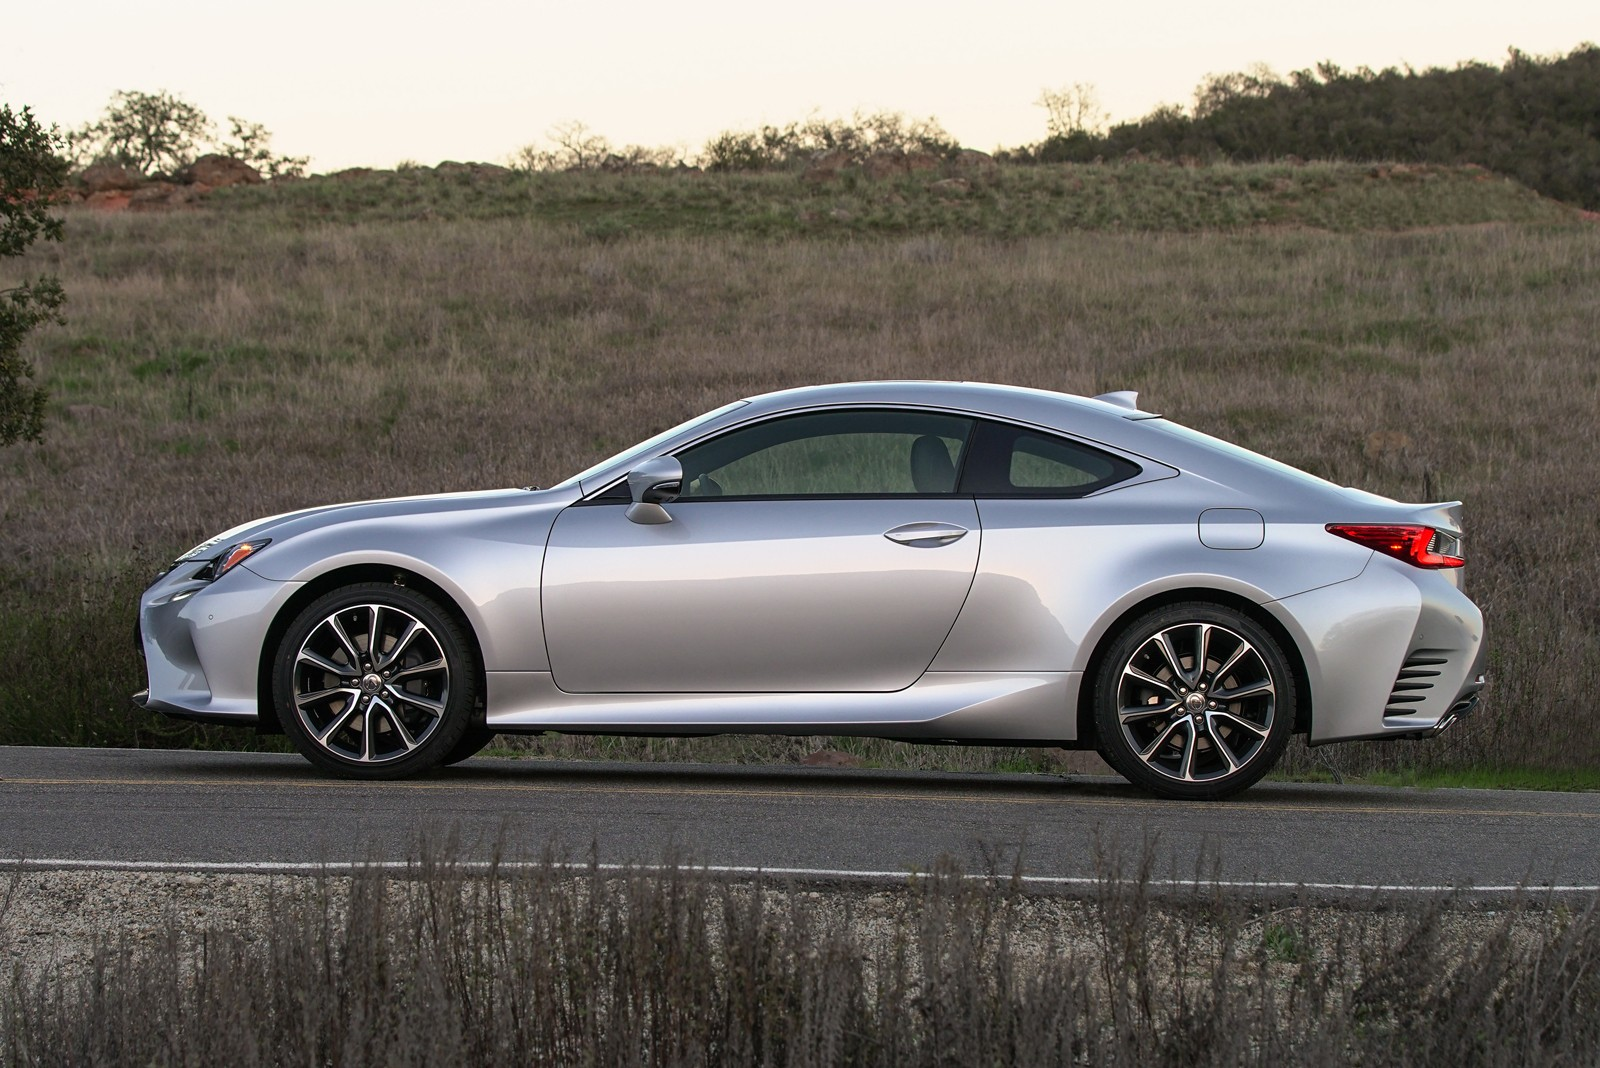 Lexus Rc 350 2018 >> Lexus RC Revised For MY 2018, RC 300 Available With Two Engine Choices - autoevolution